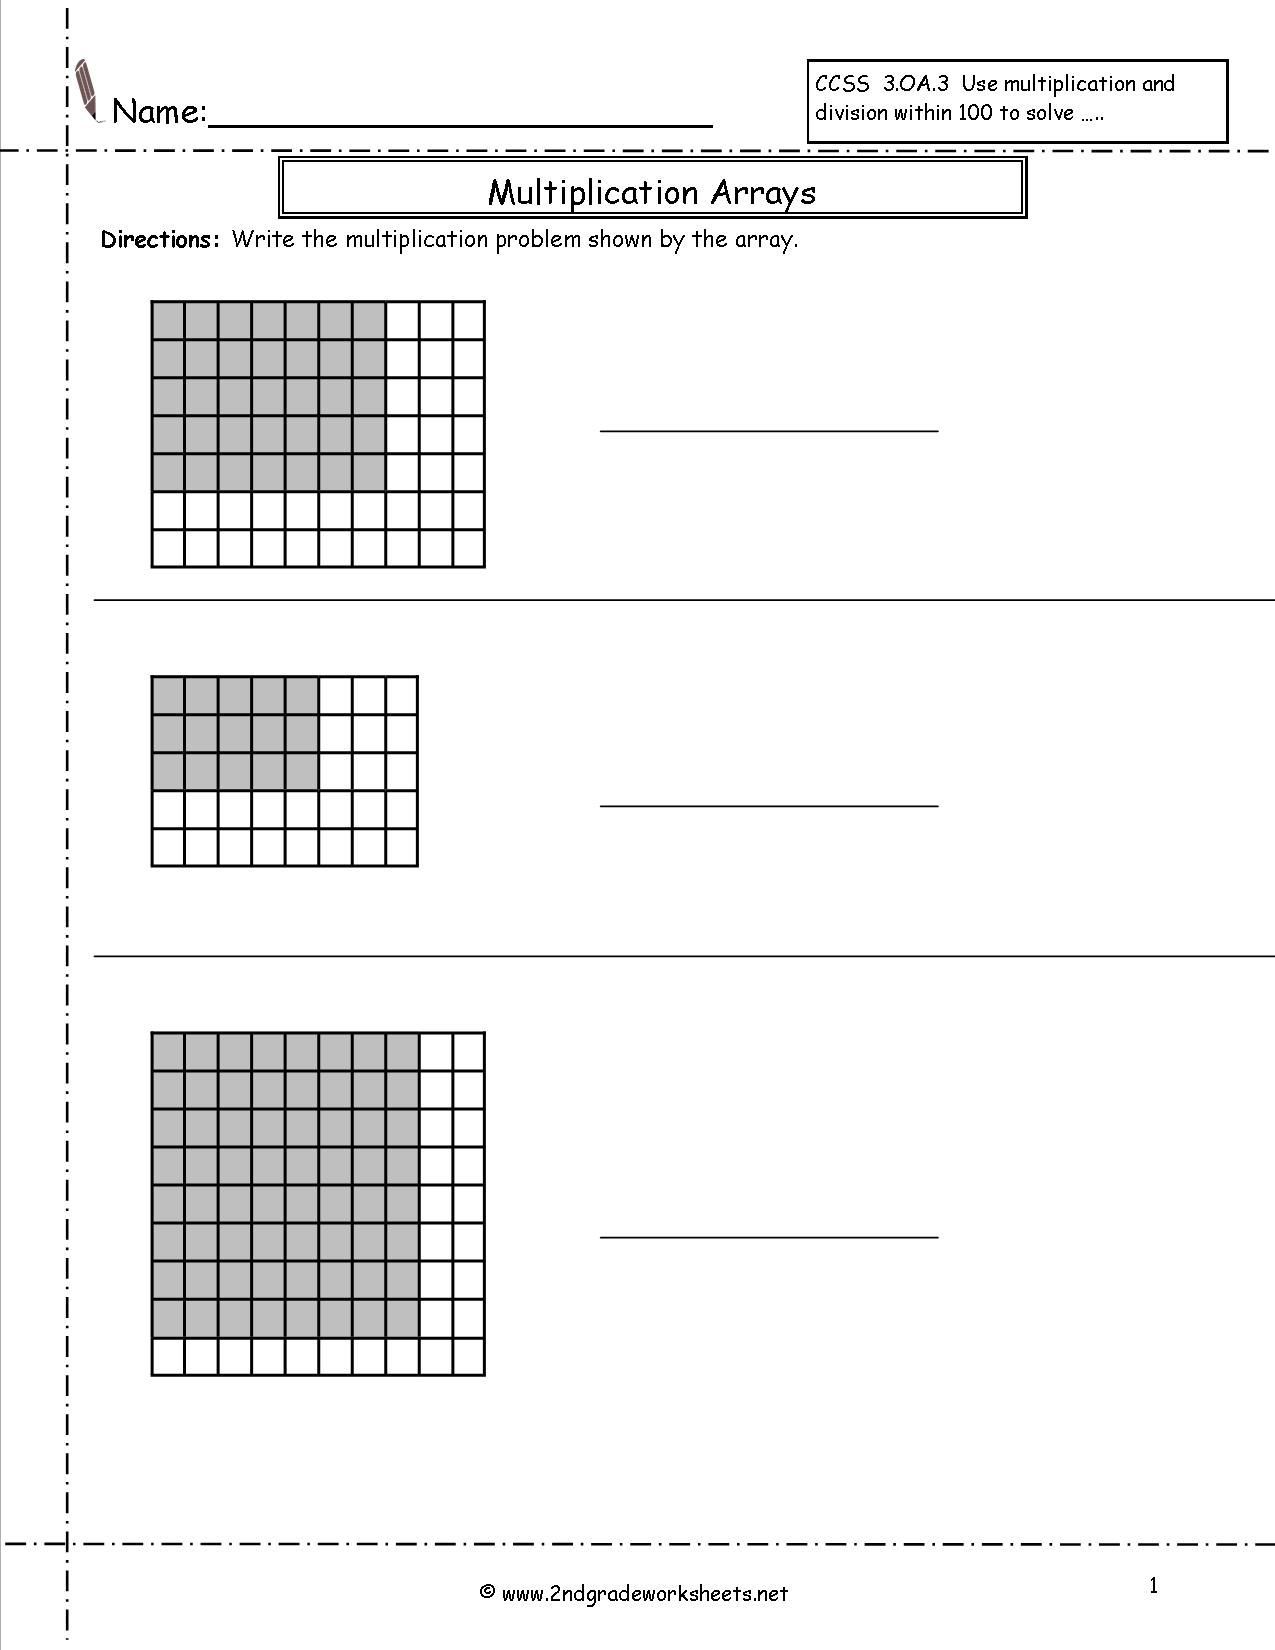 Free Array Worksheets Pictures 2nd Grade Free Preschool Worksheet Kd Worksheet Array Worksheets Multiplication Arrays Free Printable Math Worksheets